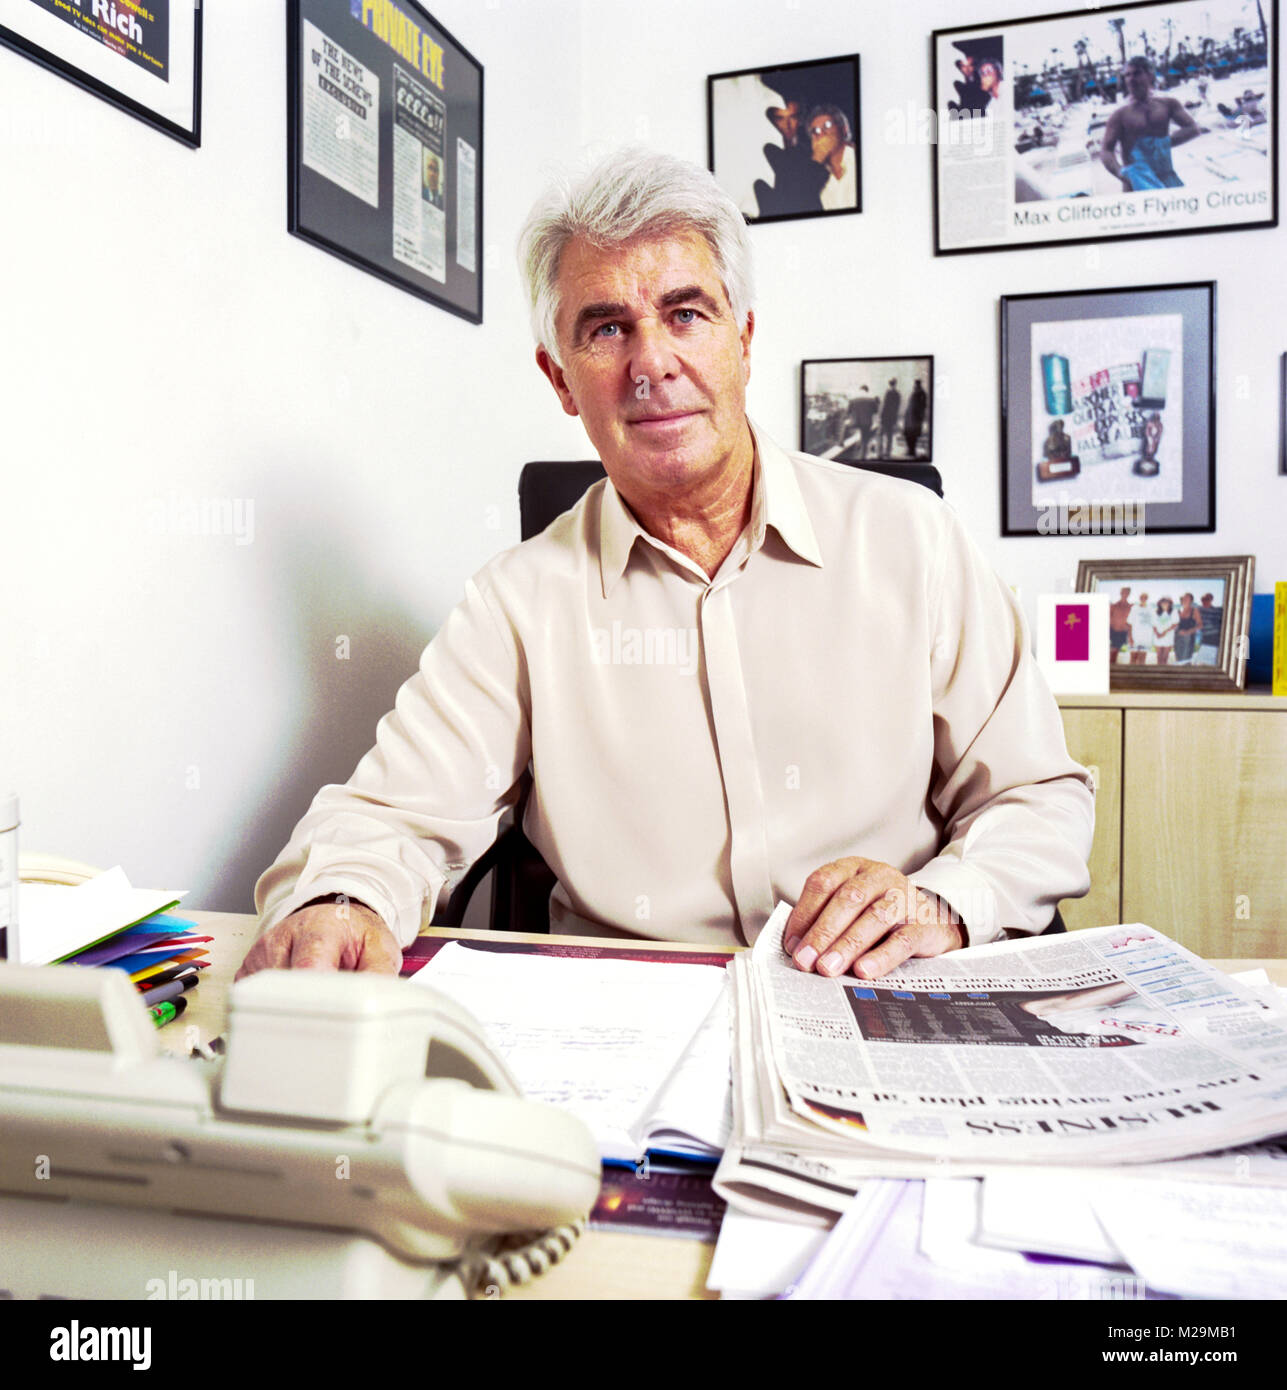 """Portrait of Max Clifford English publicist  famous for his """"kiss-and-tell"""" stories to tabloid newspapers. Photographed Stock Photo"""